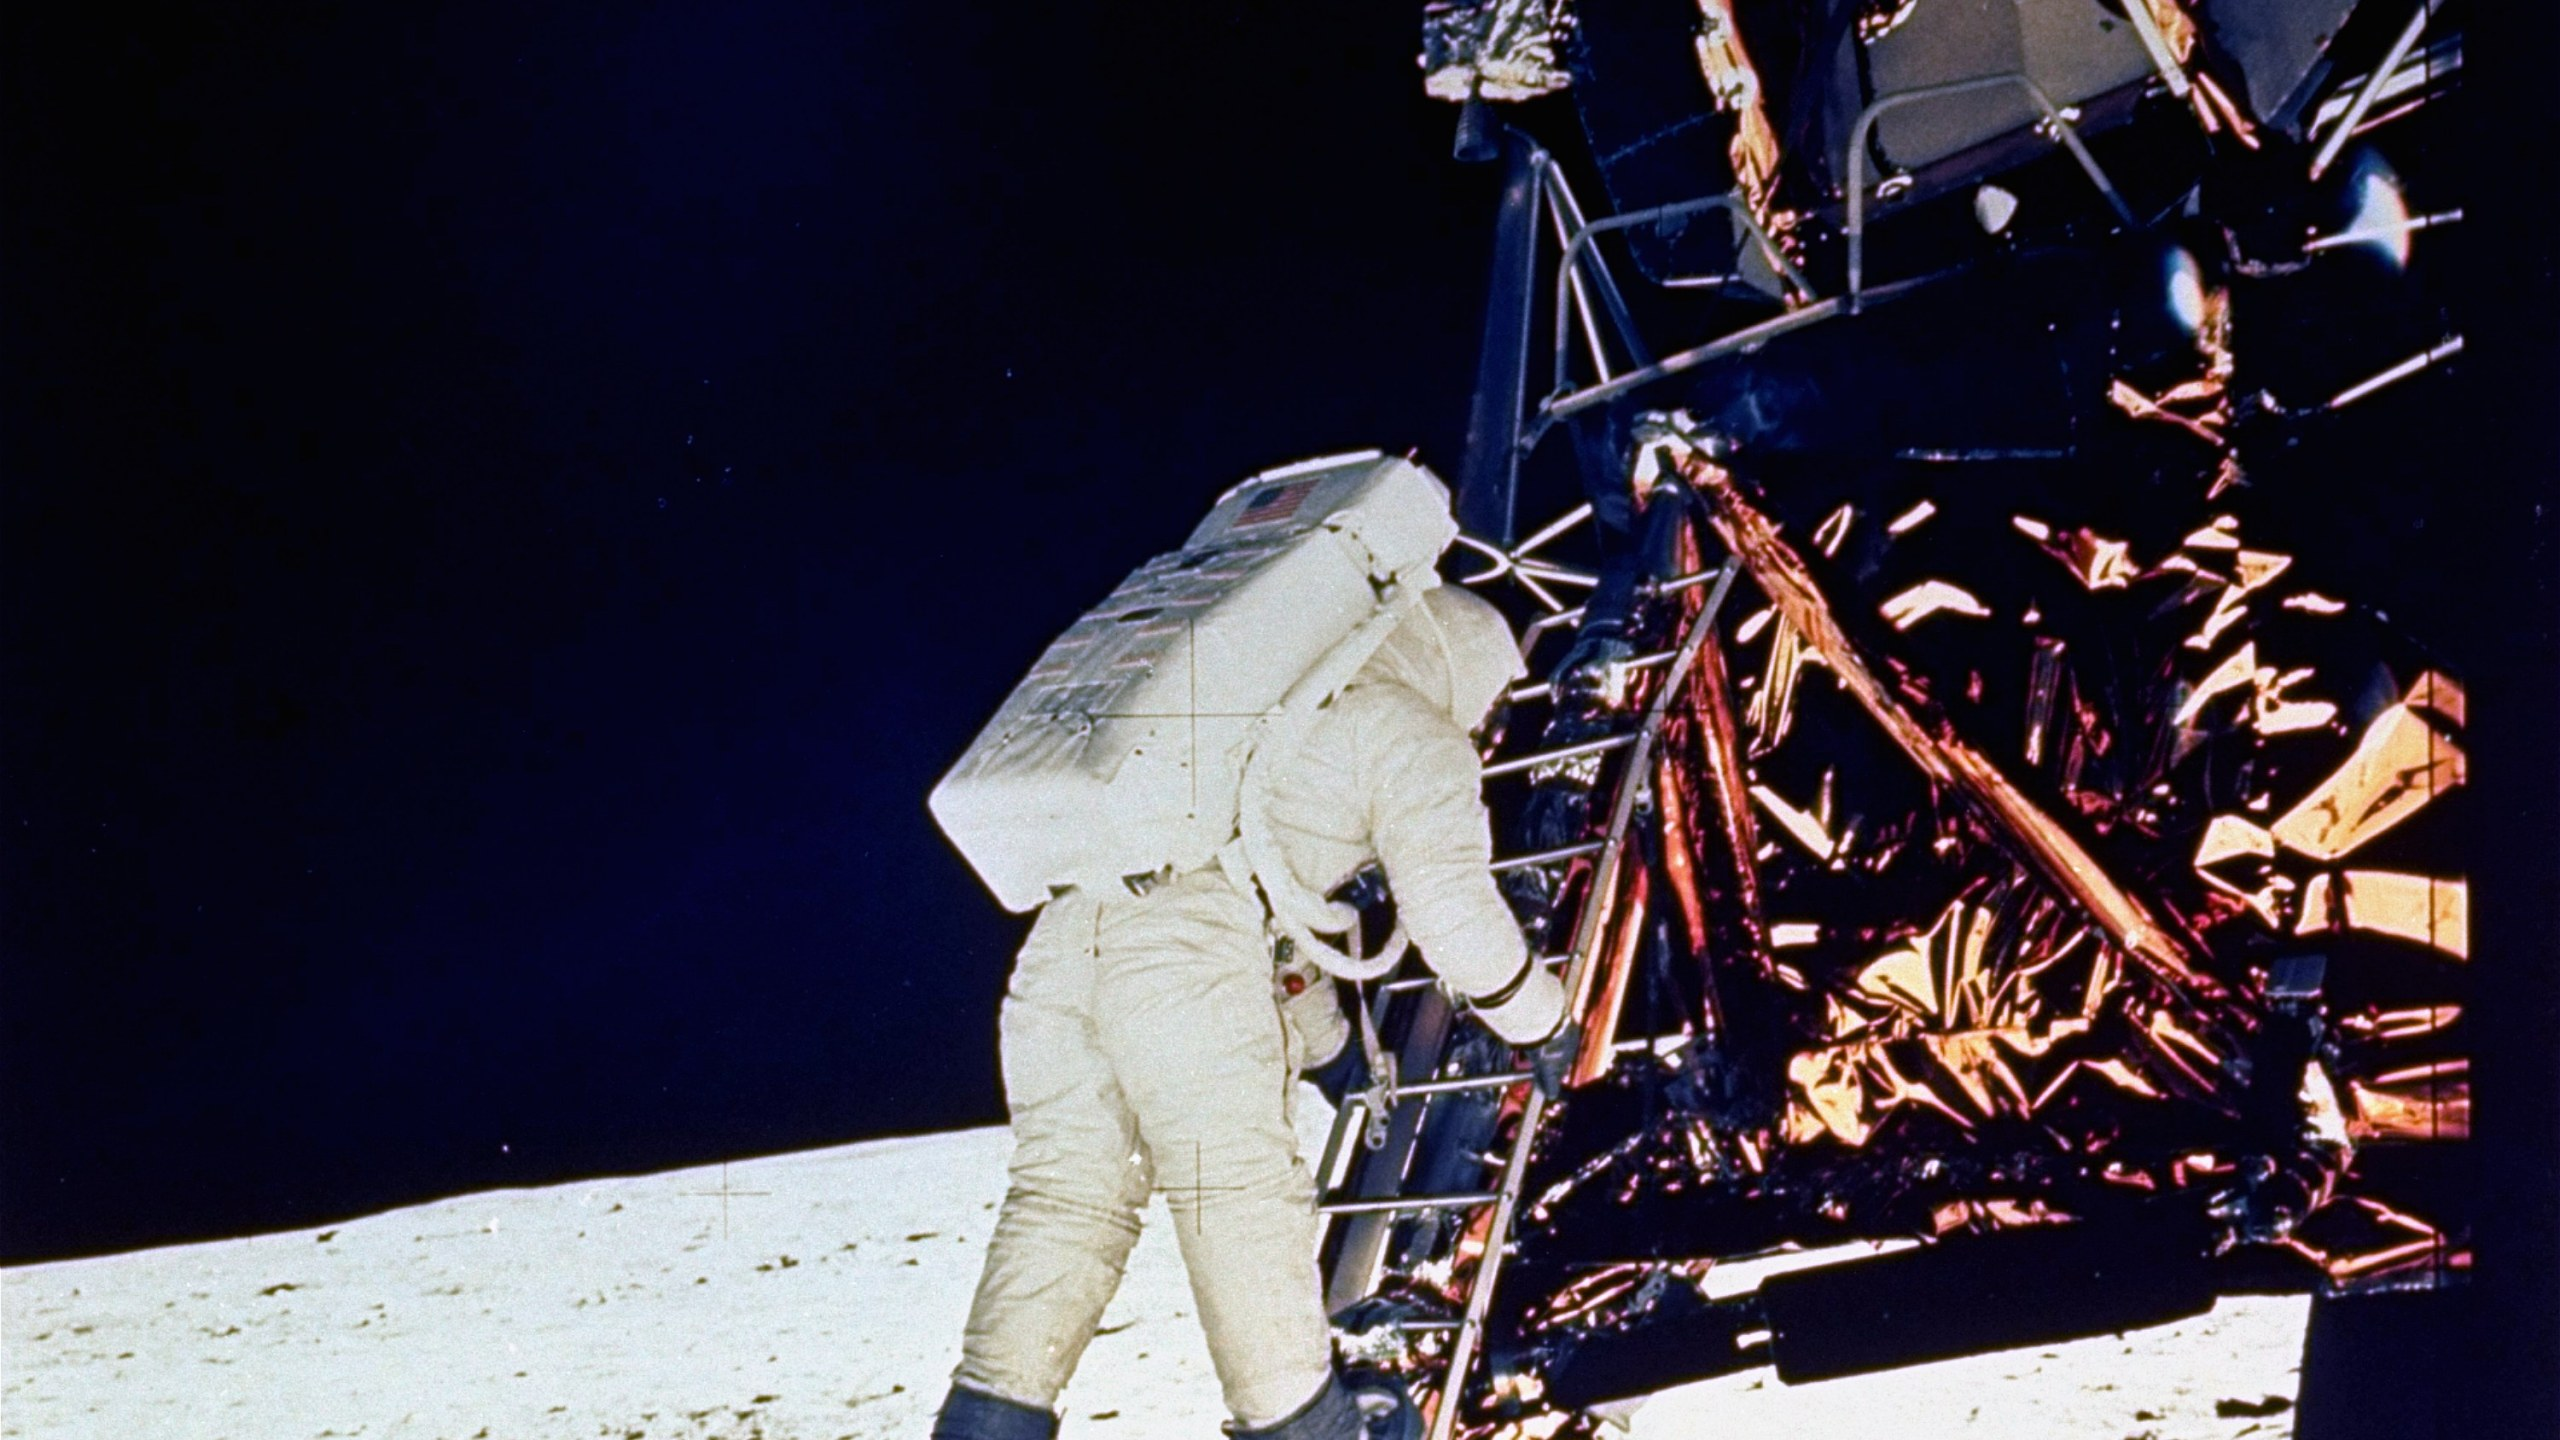 10 amazing facts about the apollo 11 moon landing - HD1833×1376